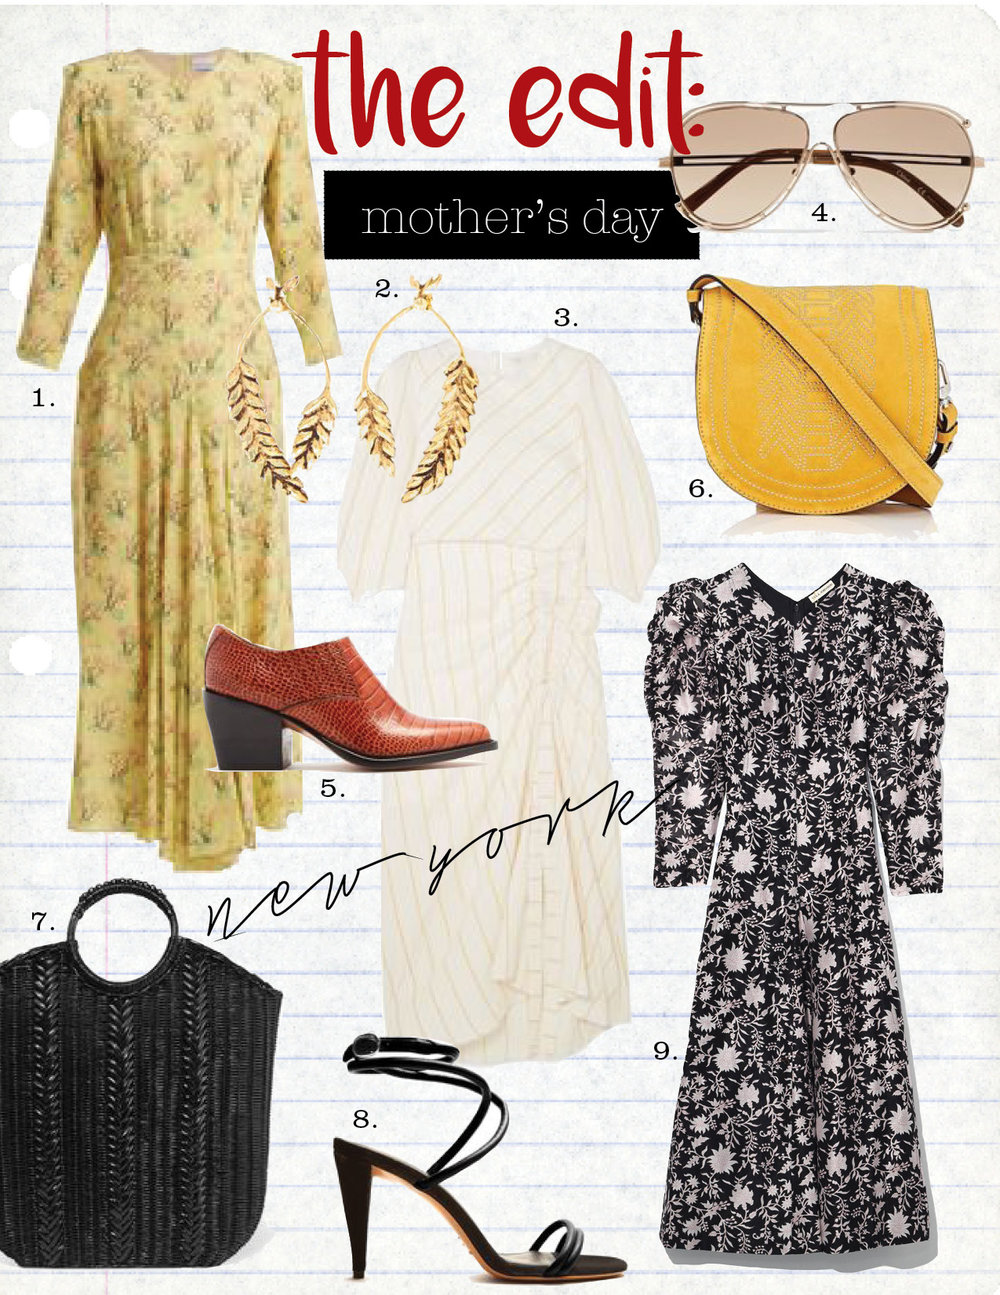 1. raey bracelet sleeve acid tree-print silk dress, $540,  matchesfashion.com  2. aurelie bidermann wheat gold-plated earrings, $320,  net-a-porter.com  3. maje ruched striped gauze midi dress, $570,  net-a-porter.com  4. chloe isidora aviator-style gold-tone sunglasses, $400,  net-a-porter.com  5. chloe rylee leather ankle boots, $880,  matchesfashion.com  6. altuzarra ghianda small suede saddle bag, $1495,  barneys.com  7. ulla johnson rona wicker tote, $390,  net-a-porter.com  8. isabel marant abigua tie-ankle leather sandals, $695,  matchesfashion.com  9. ulla johnson fontaine floral cotton-silk dress, $575,  barneys.com